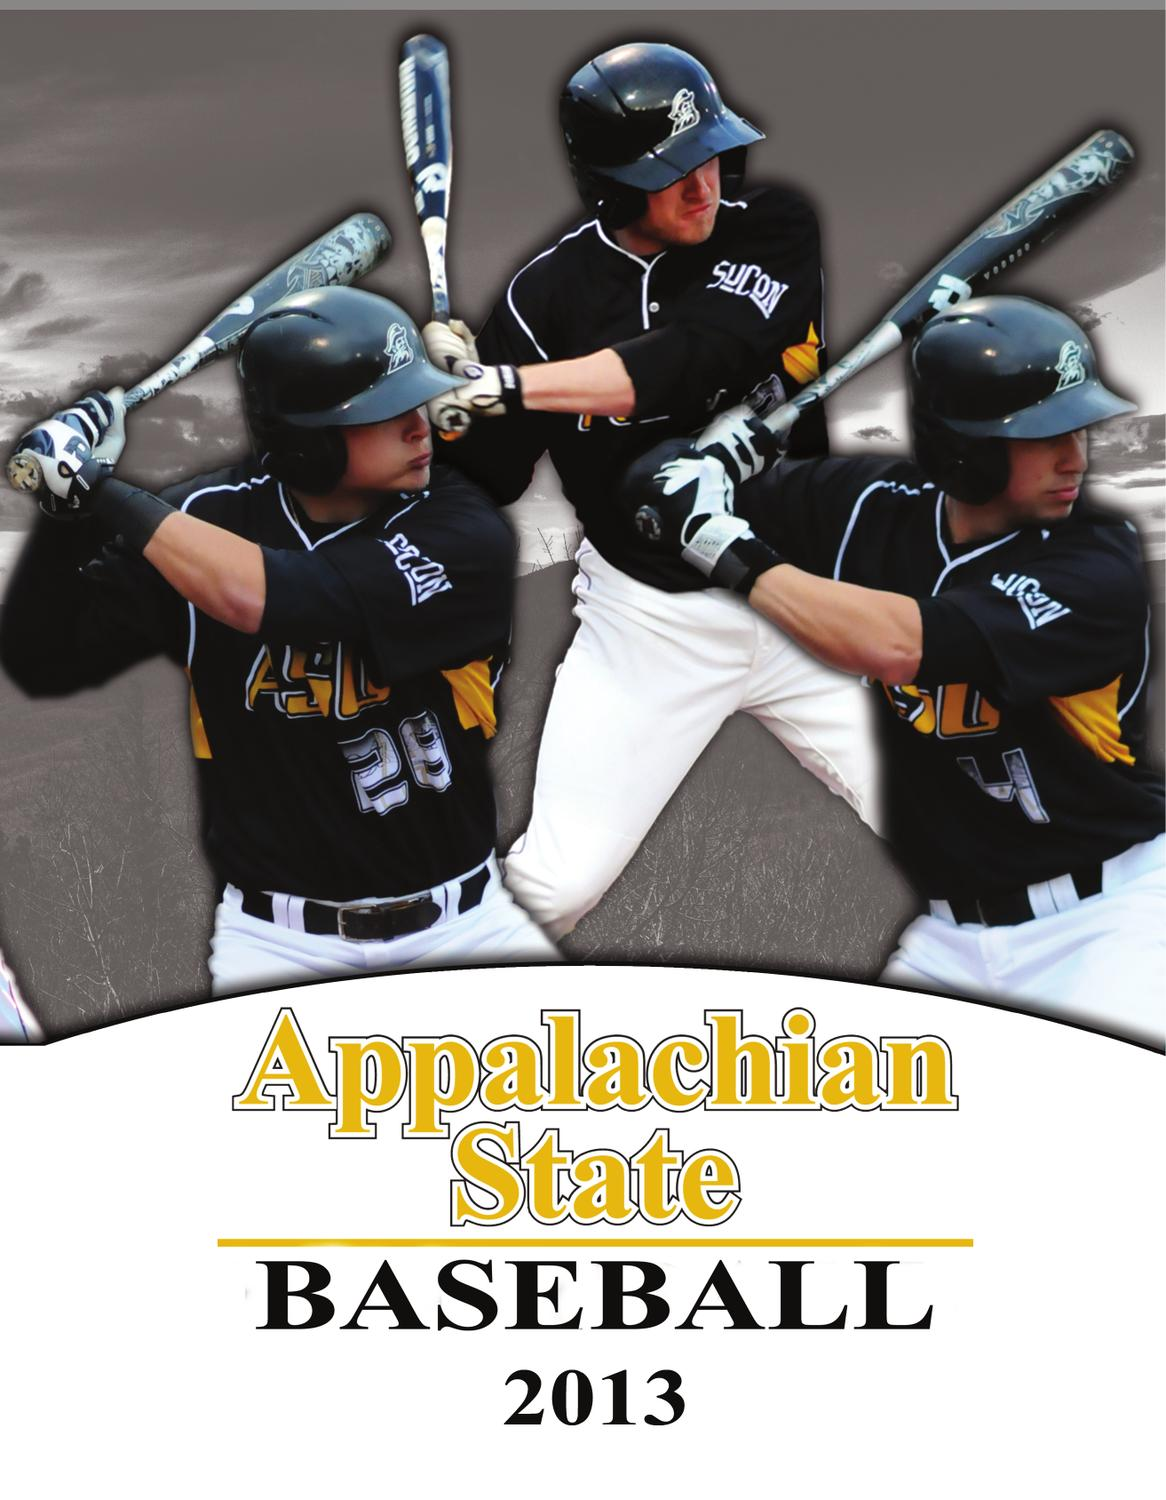 cab0898db 2013 Appalachian State Baseball Media Guide by Appalachian State University  Athletics - issuu